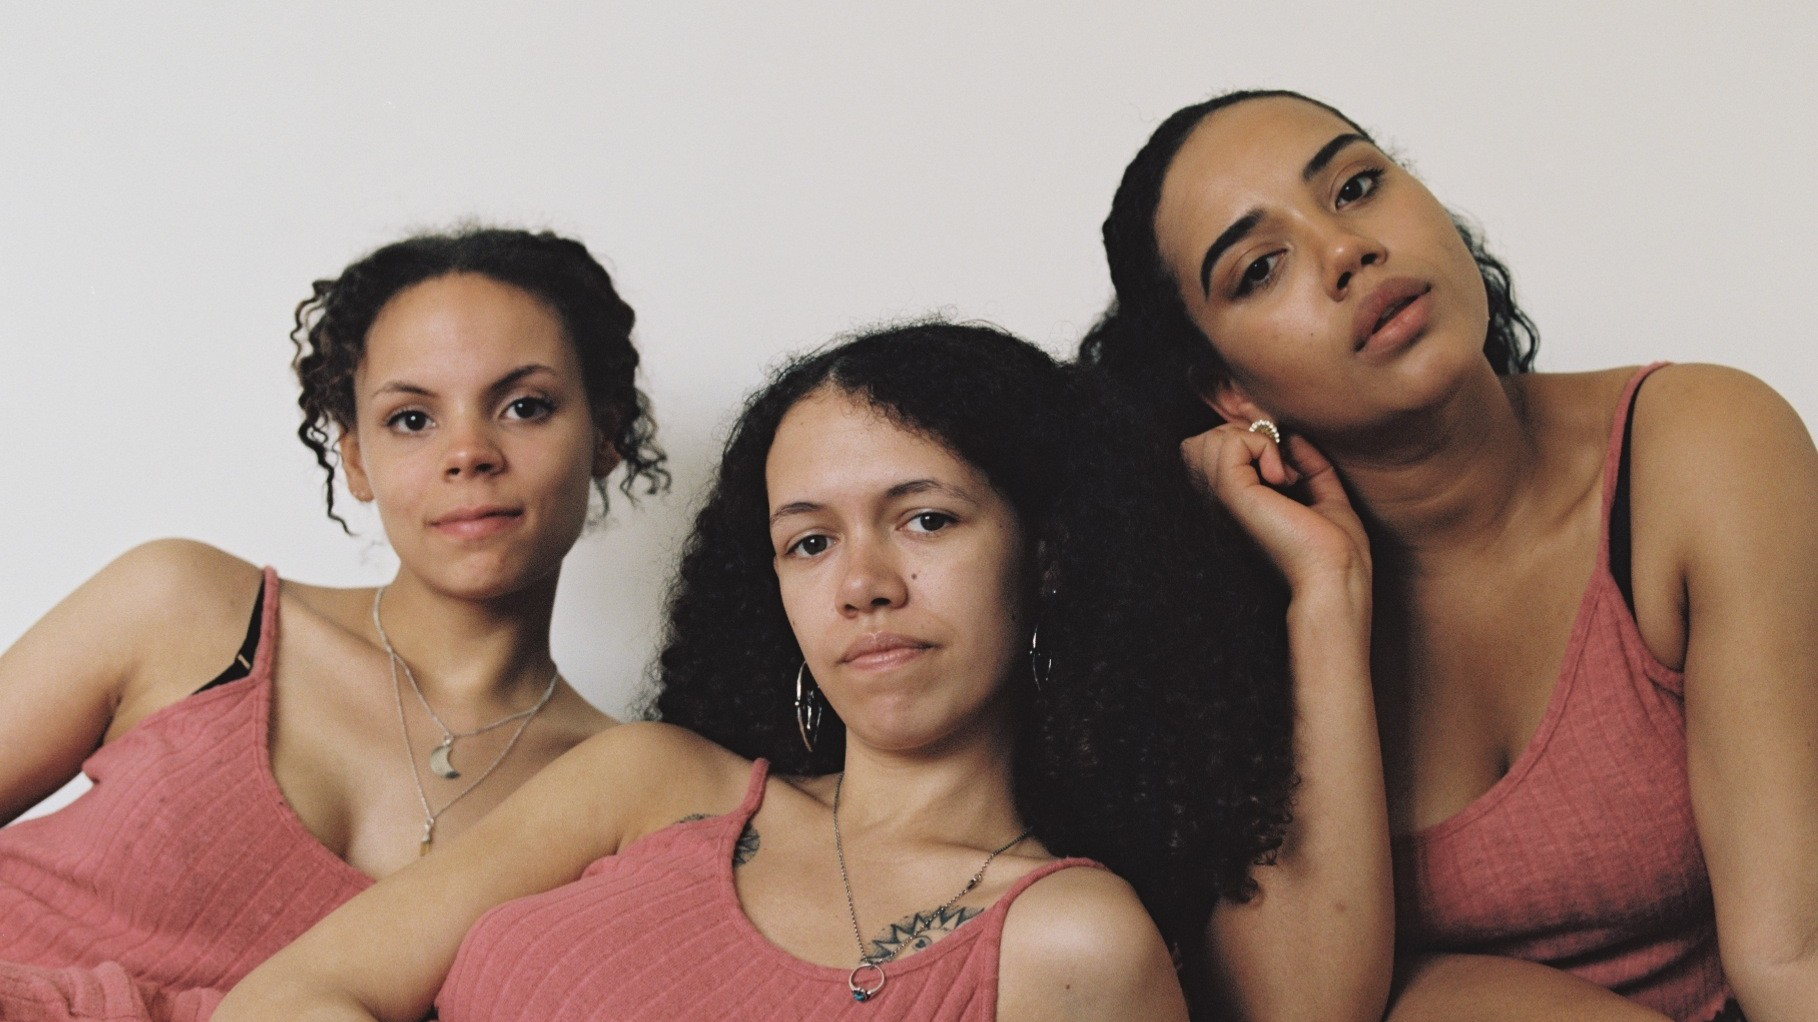 the new 'typical girls' zine features generations of radical creative women